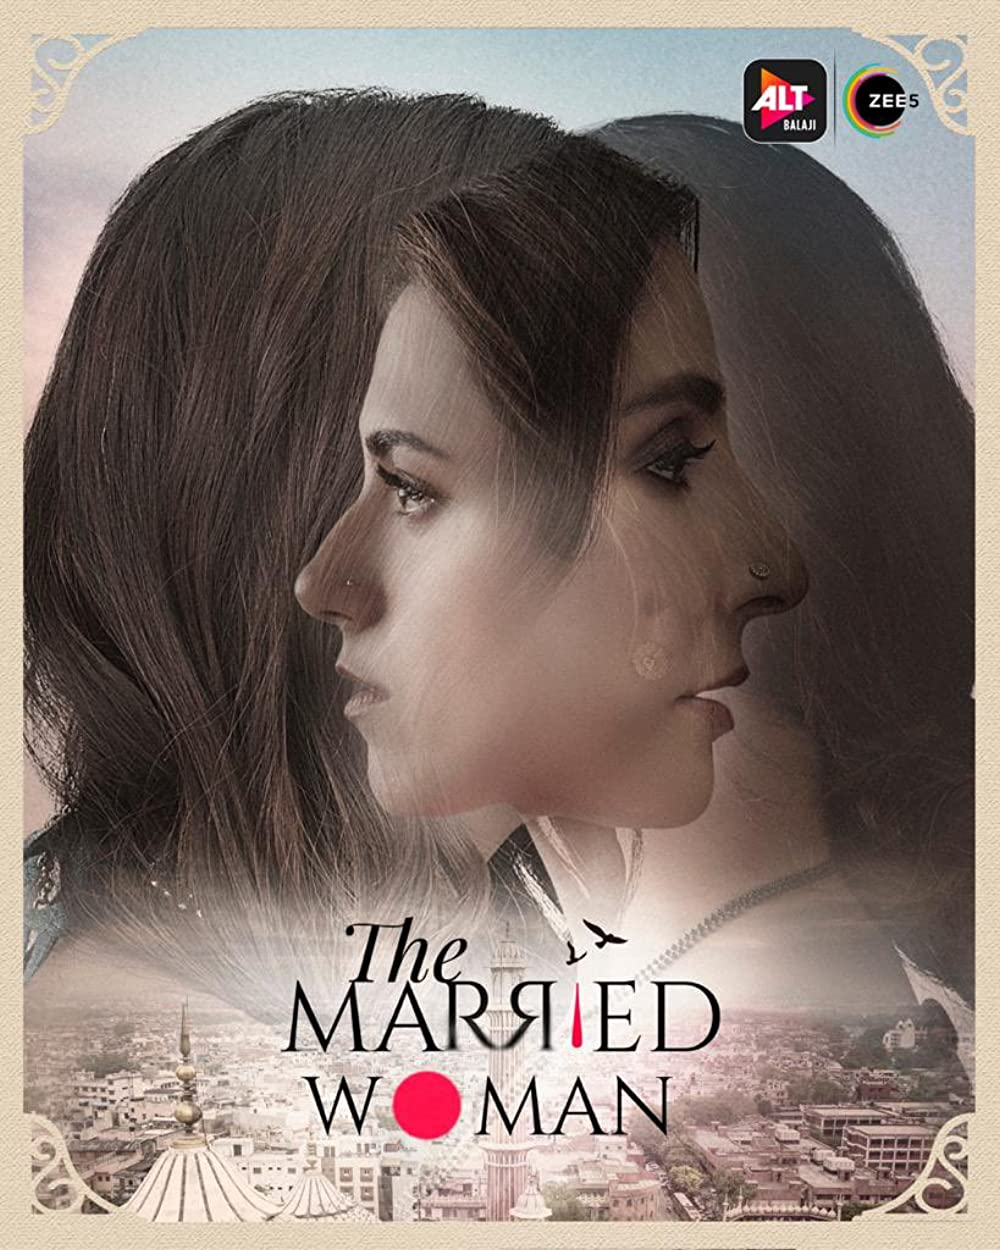 The Married Woman 2021 S01 Hindi Complete ALTBalaji Web Series 1080p HDRip 4.42GB Download